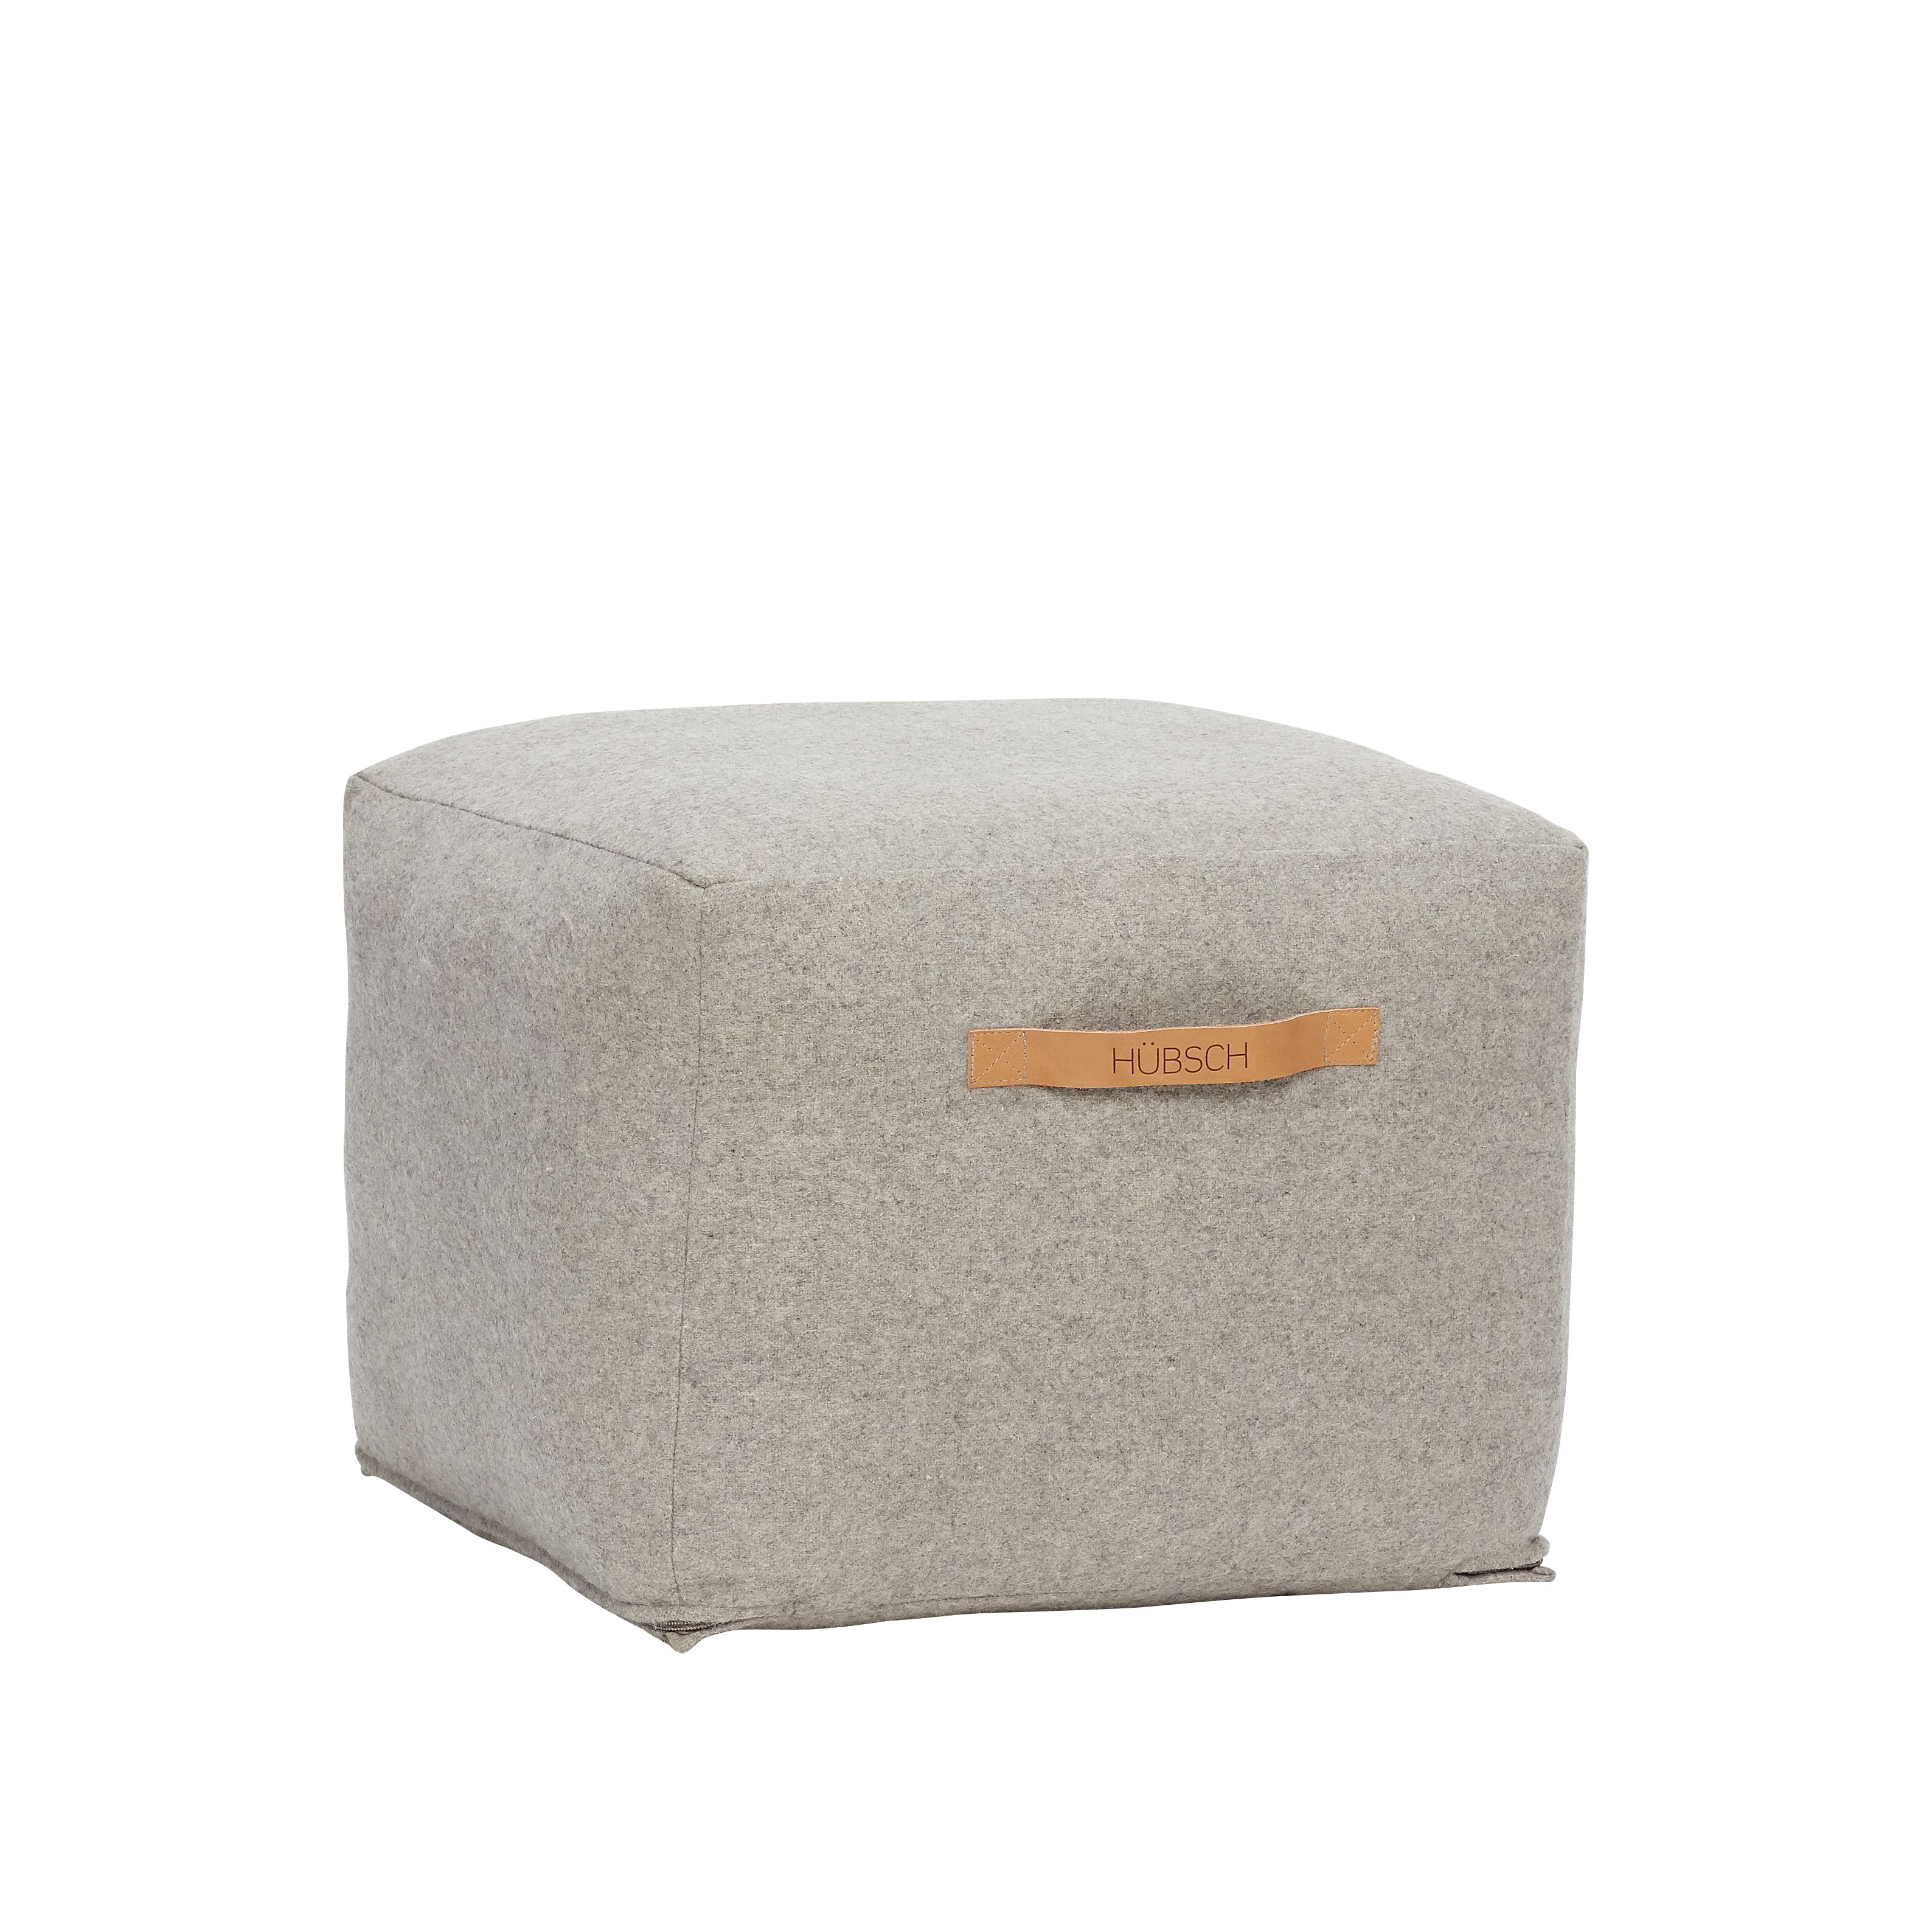 Grey square wool pouf with brown leather